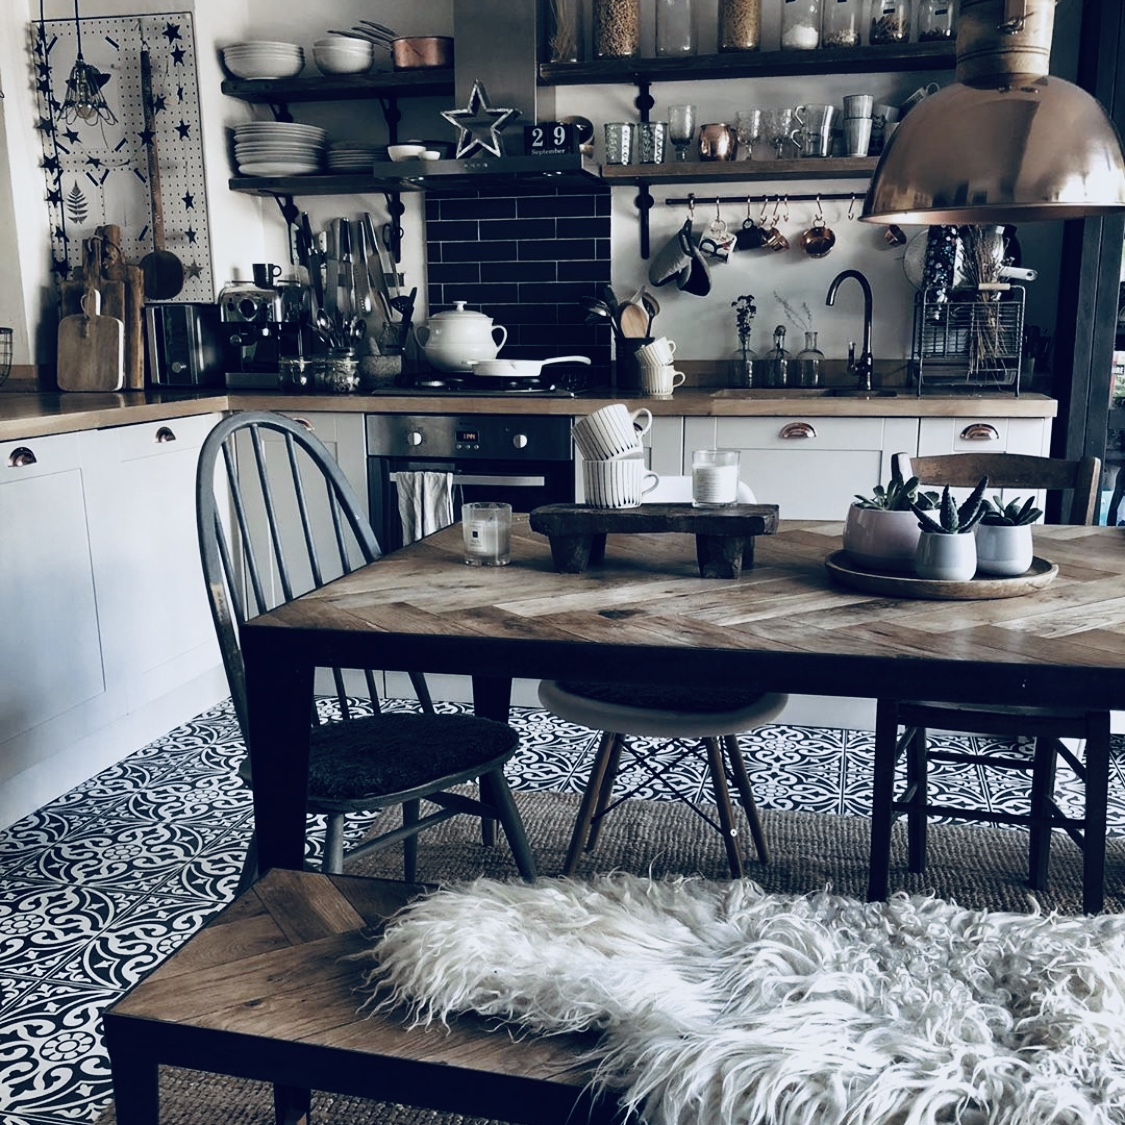 Kitchen inspiration using woods not metal, by Reena @hygge_for_home